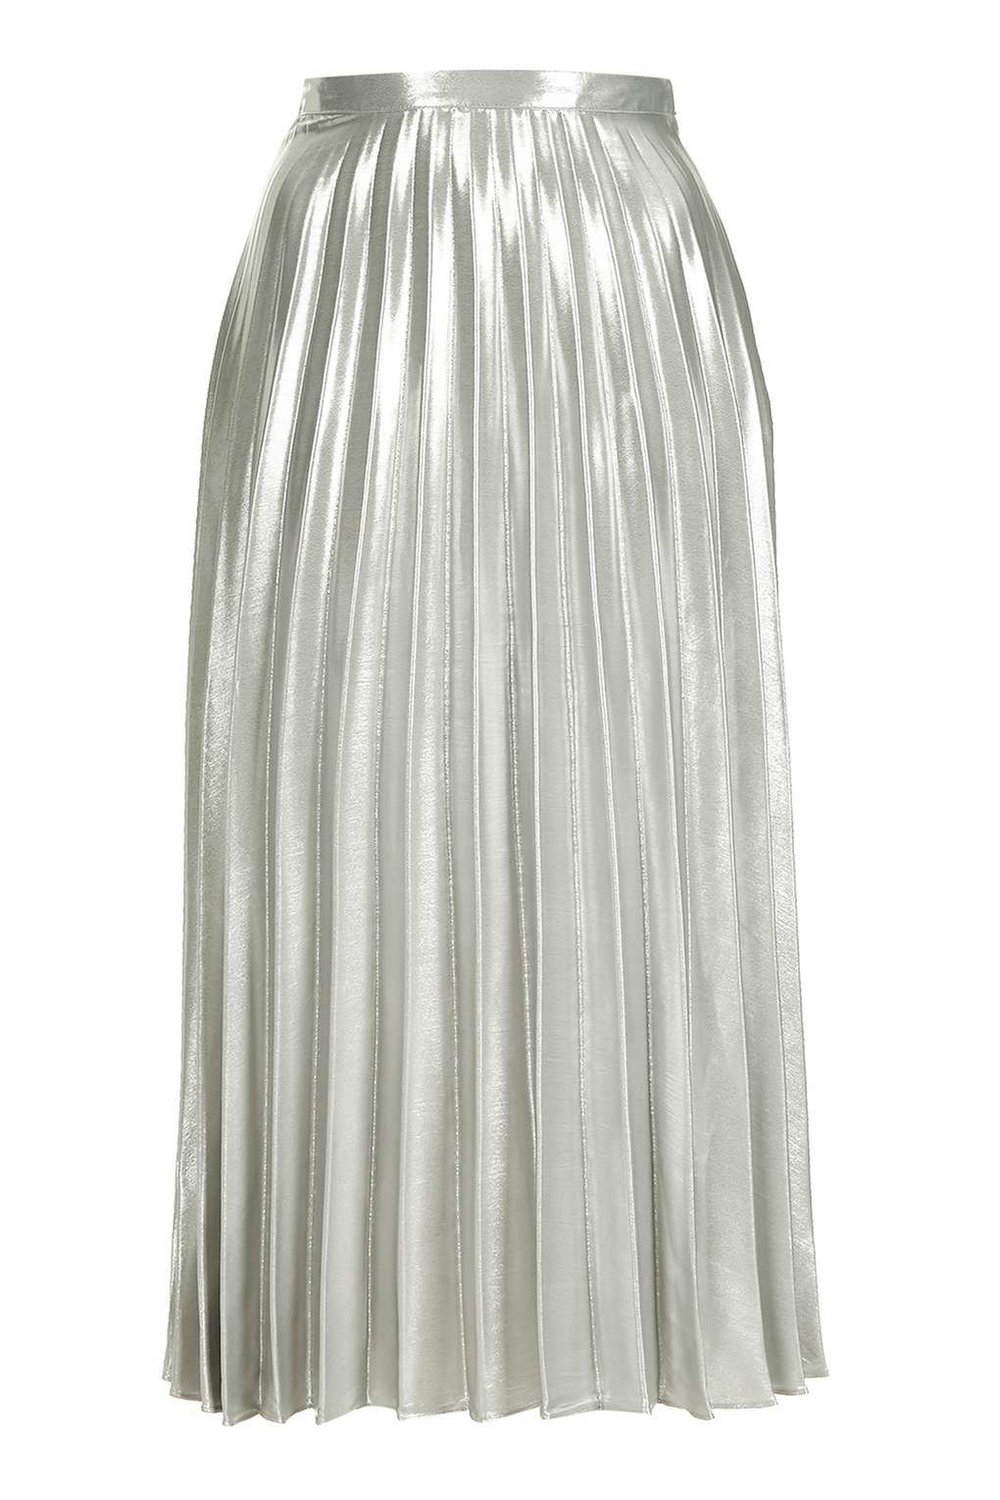 TOPSHOP METALLIC SILVER PLEATED SKIRT